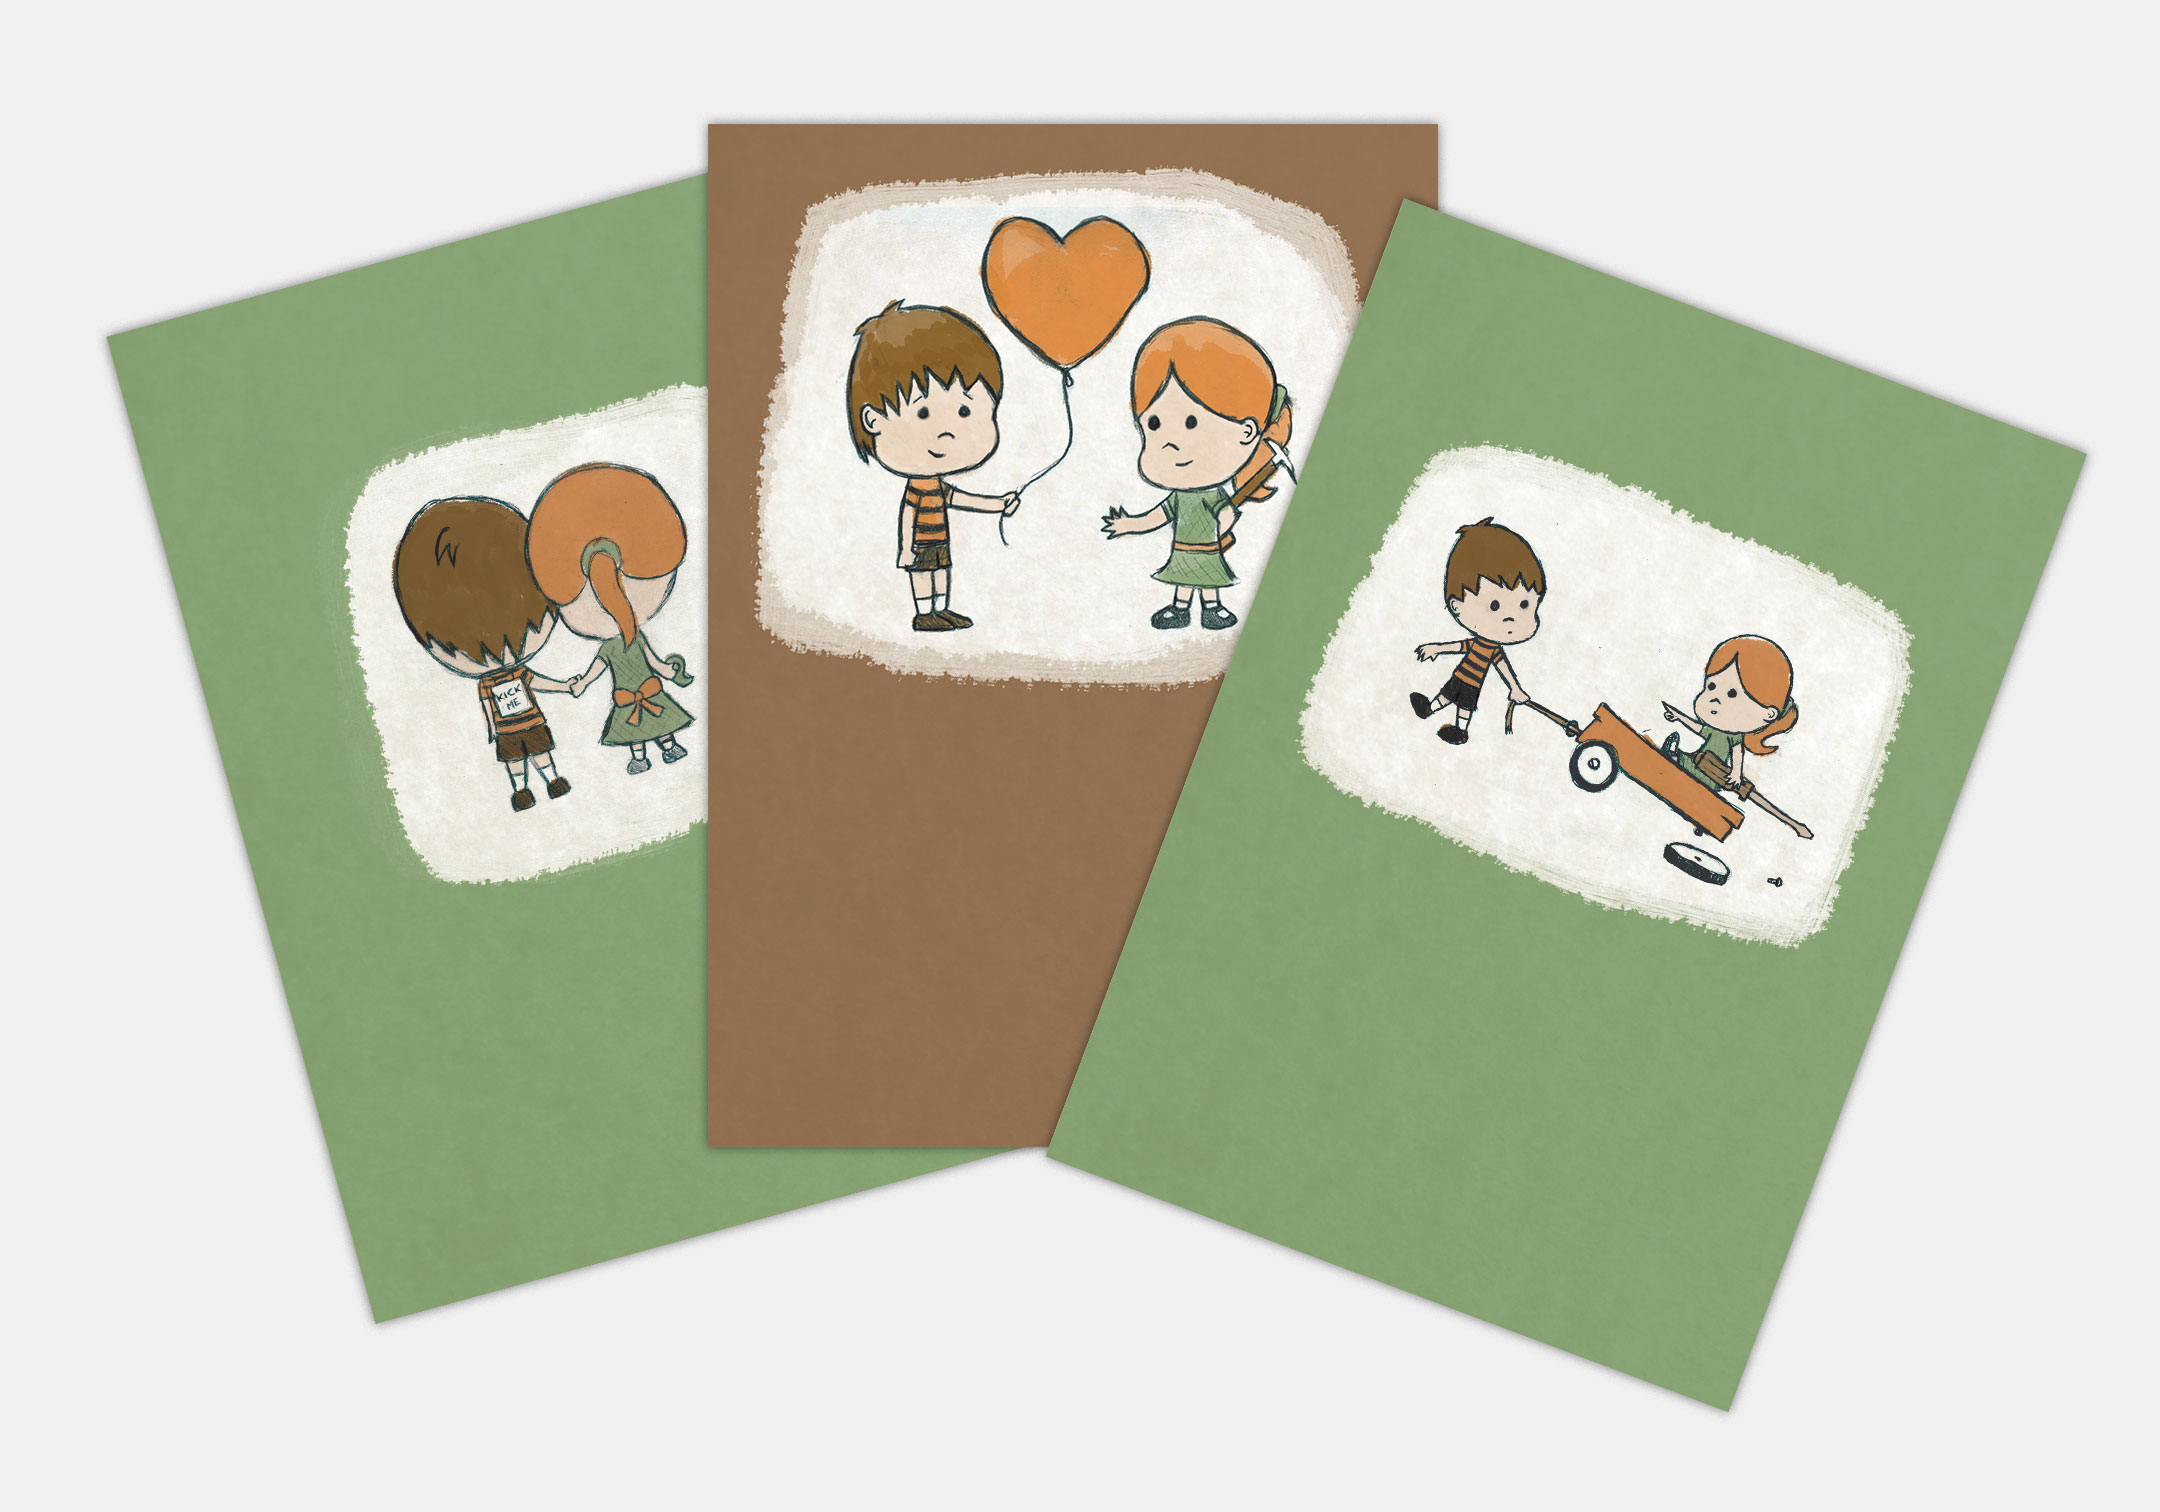 Card covers